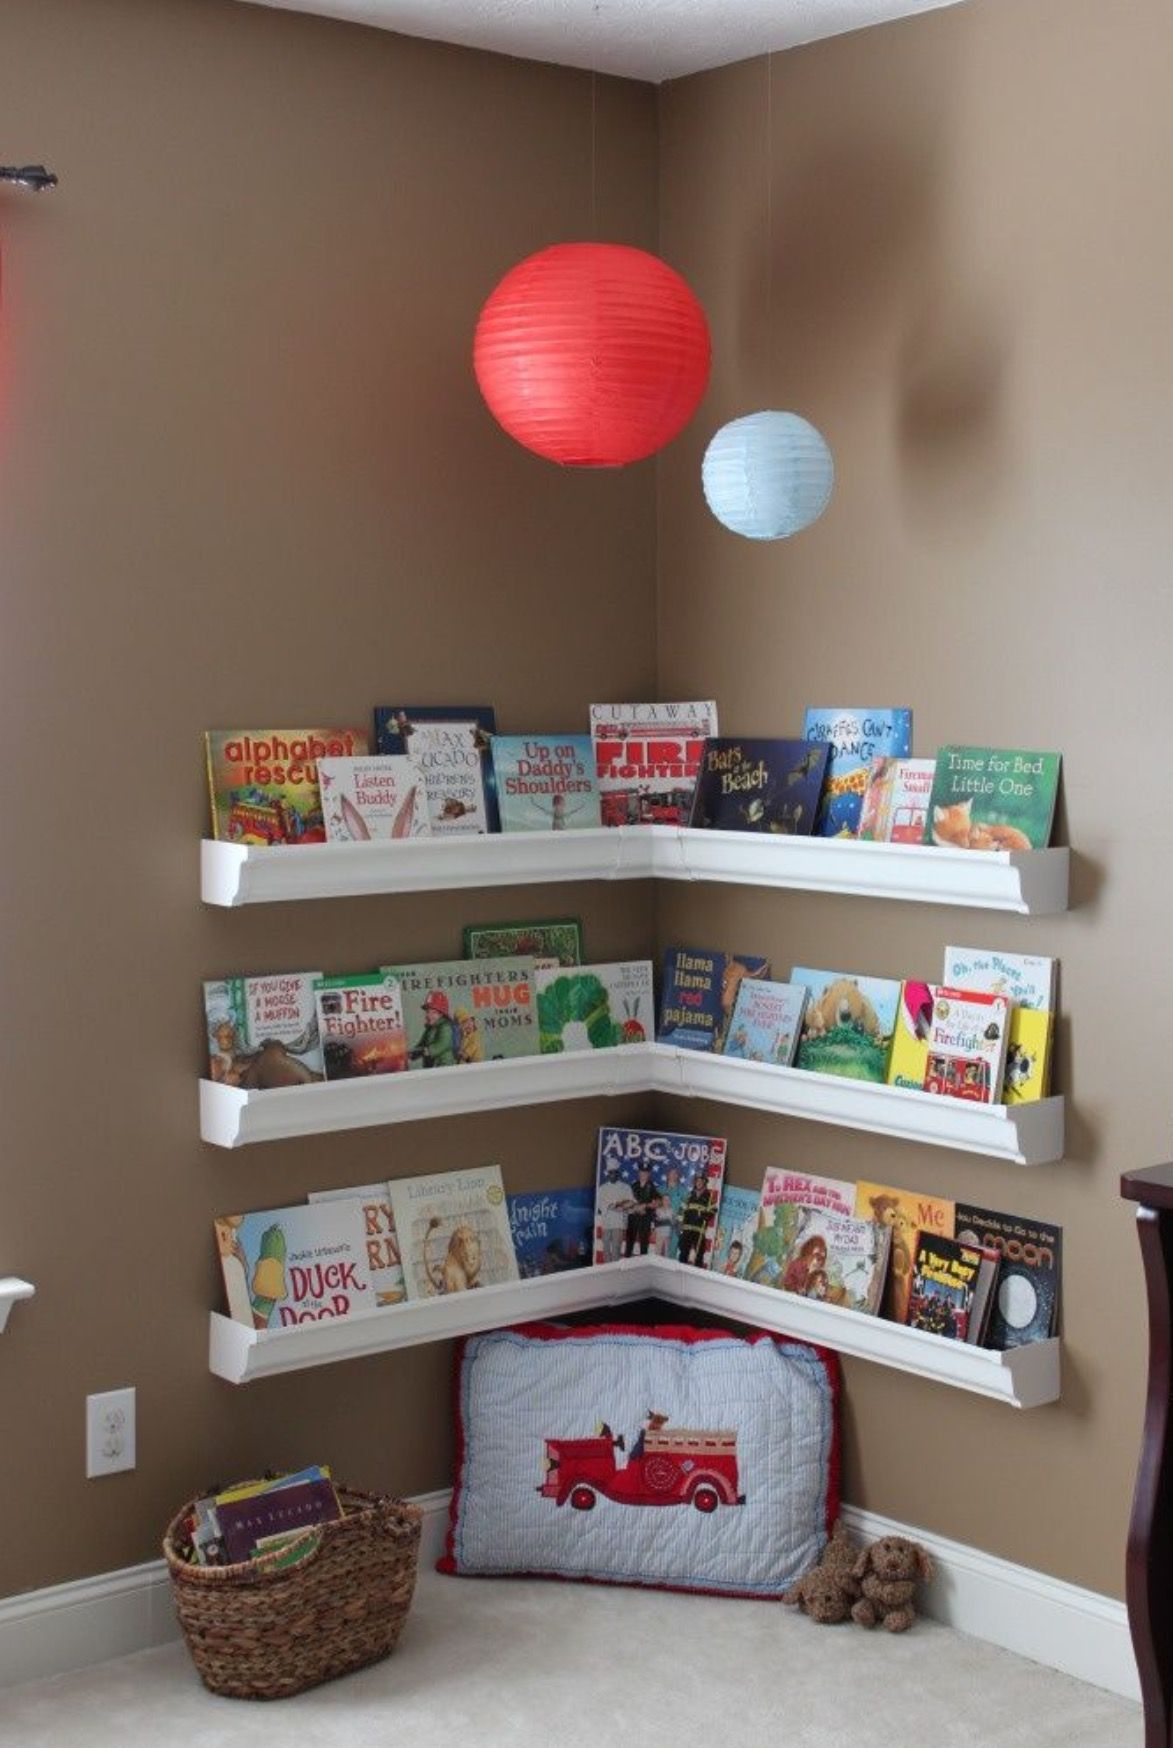 Small Corner Bookshelves Work Great For Behind Door In Kids Room